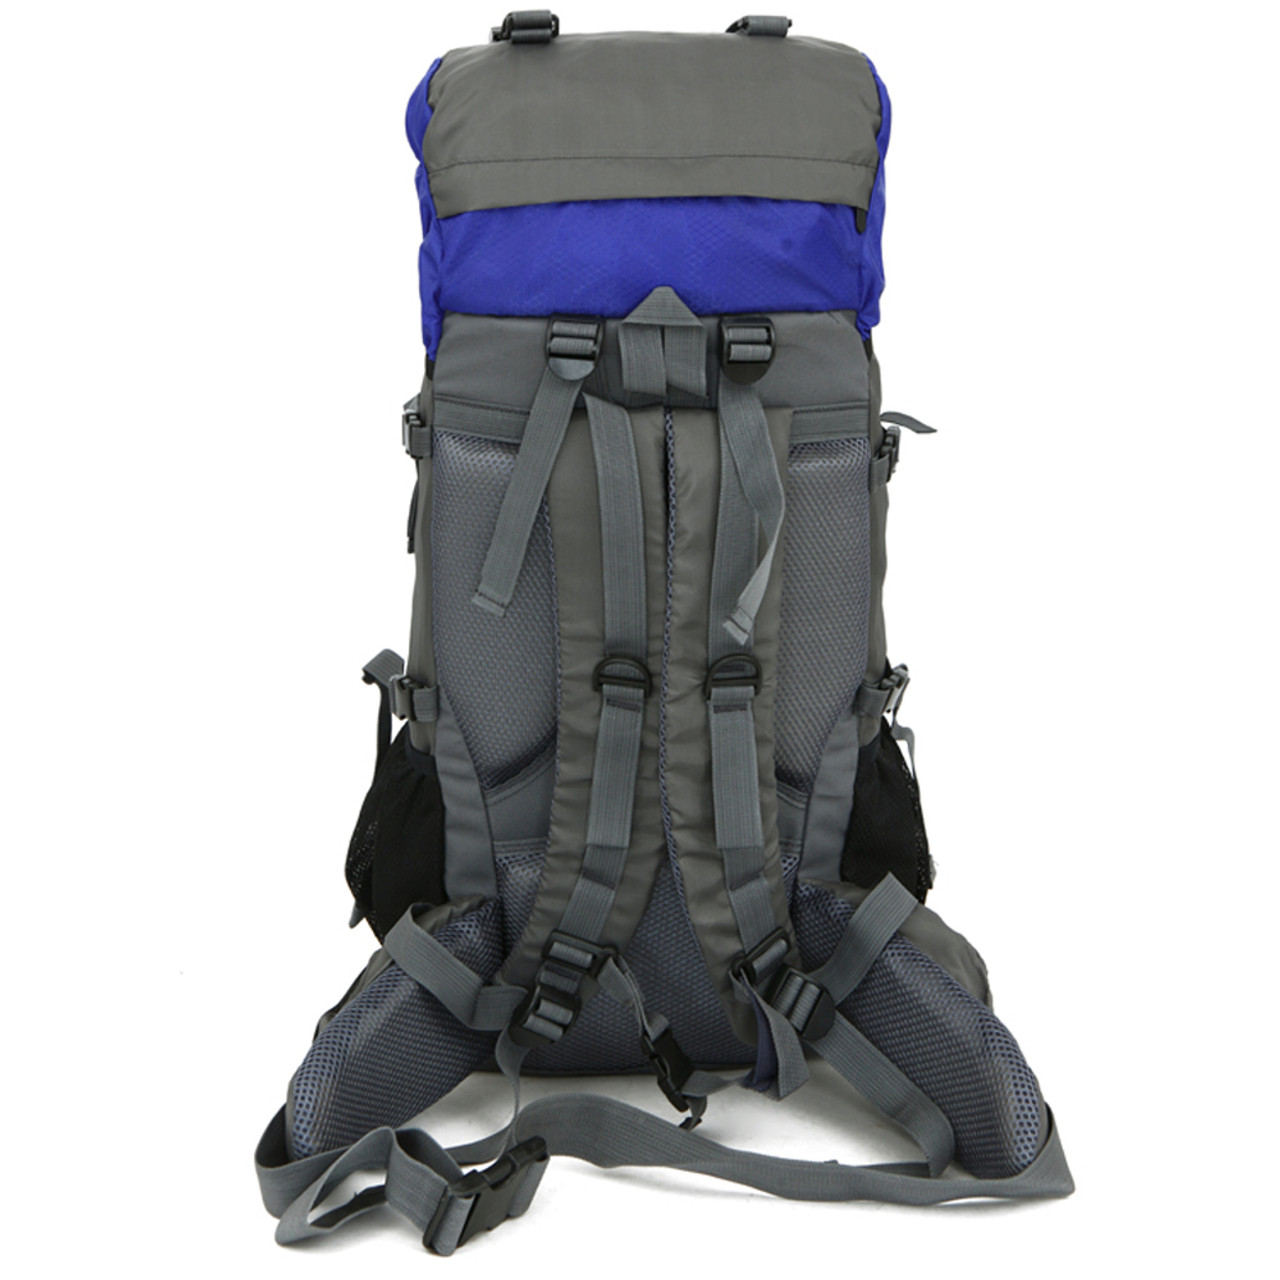 642efbbc7 ... Free Knight Extra Large 60L Nylon Waterproof Mountaineering Backpack  Outdoor Sport Climbing Hiking Traveling Picnic Bag ...